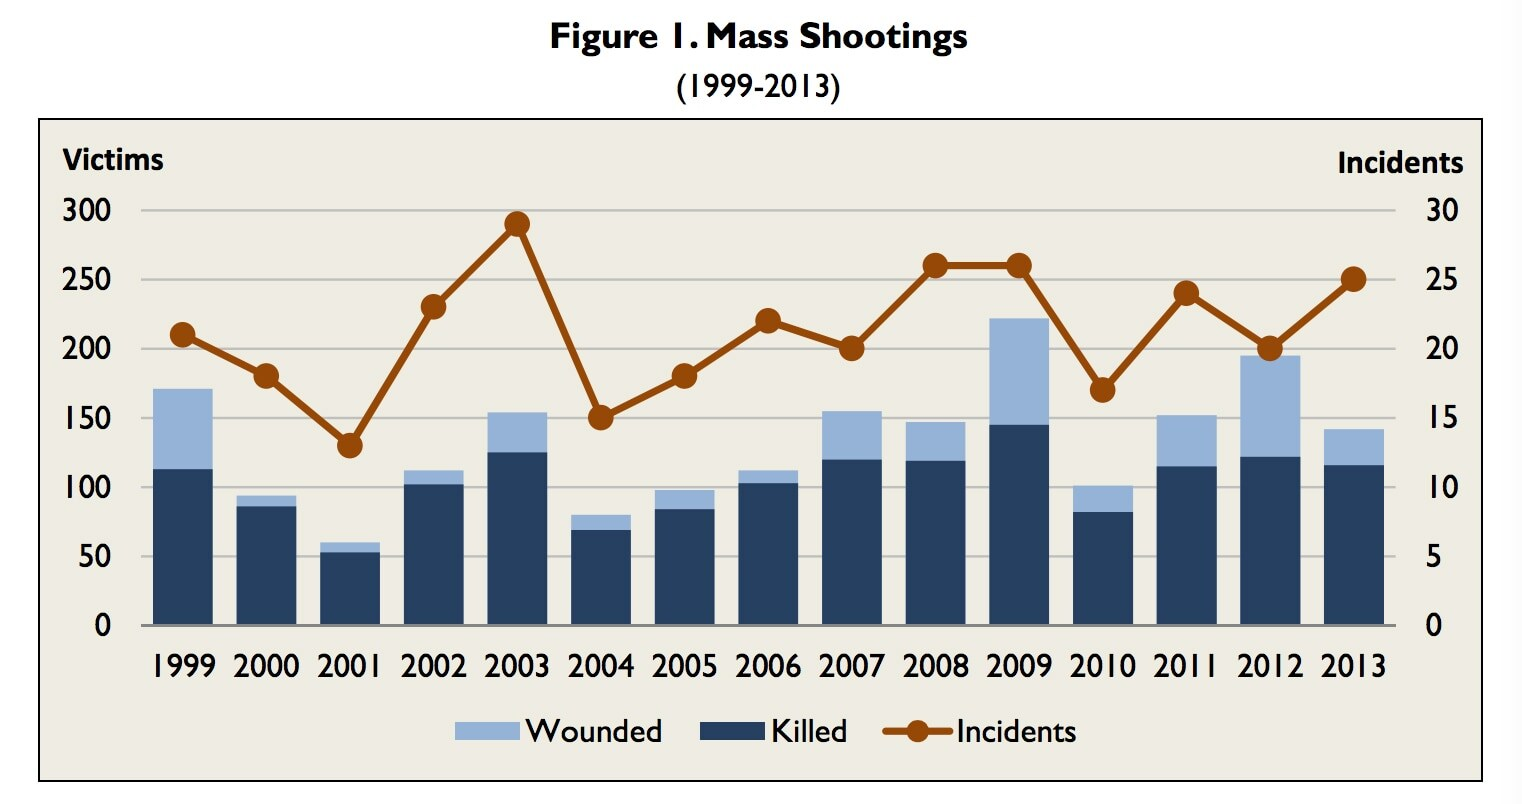 Source: CRS analysis of FBI Supplementary Homicide Reports, press accounts, agency press releases, and other compilations by mass media and advocacy groups.